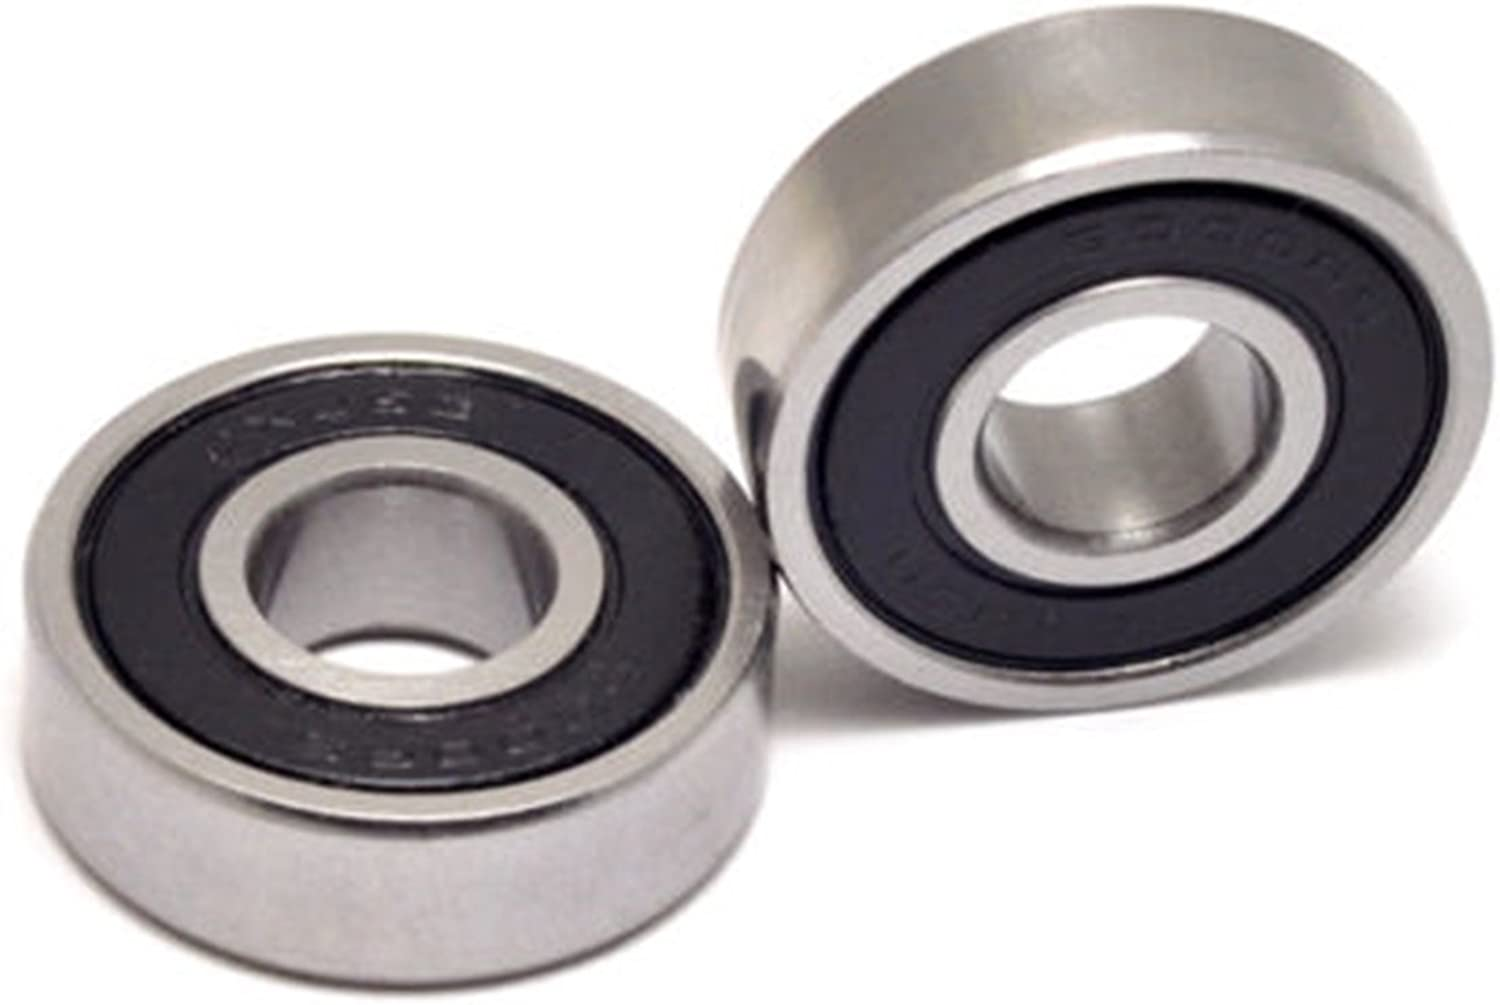 2X Premium ABEC 3 Clutch Shaft Bearings for BladeZ Gas Scooter Moby XL 35cc 40cc